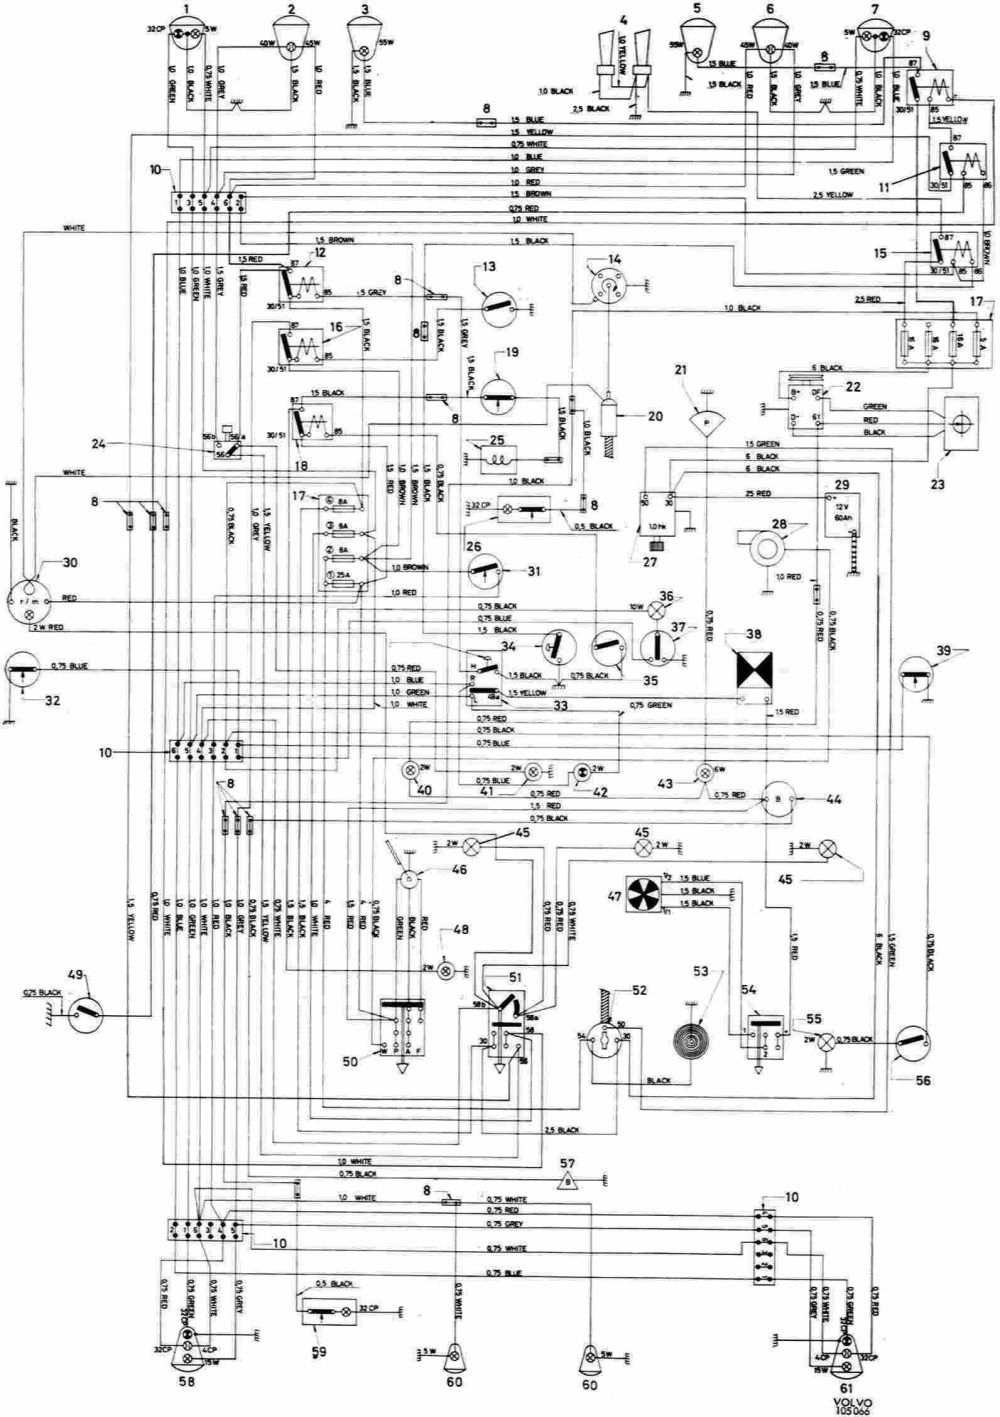 medium resolution of volvo wire diagram wiring diagram technic volvo 340 wiring diagram